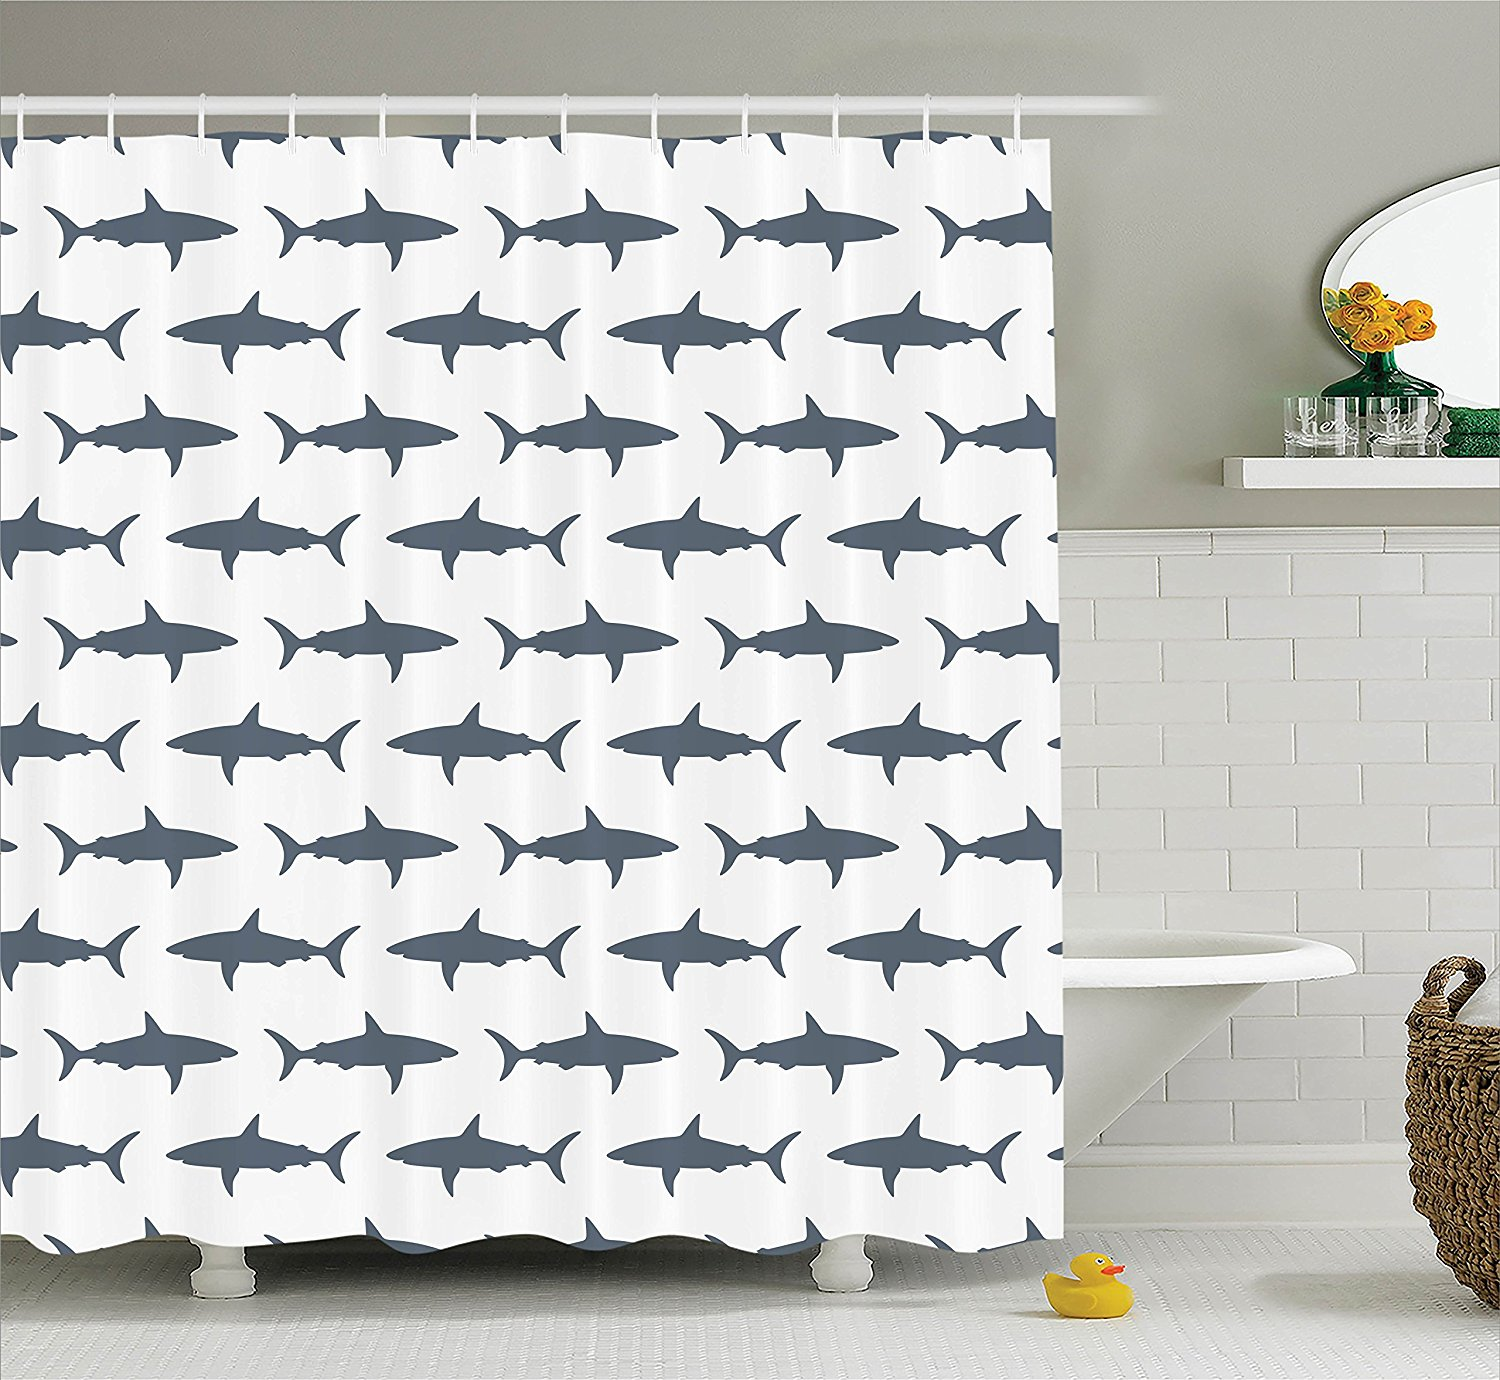 Fish Shower Curtain Sea Animals Decor by , Sharks Swimming Horizontal Silhouettes Traveler Powerful Danger Design Pattern, Polyester Fabric.., By Ambesonne